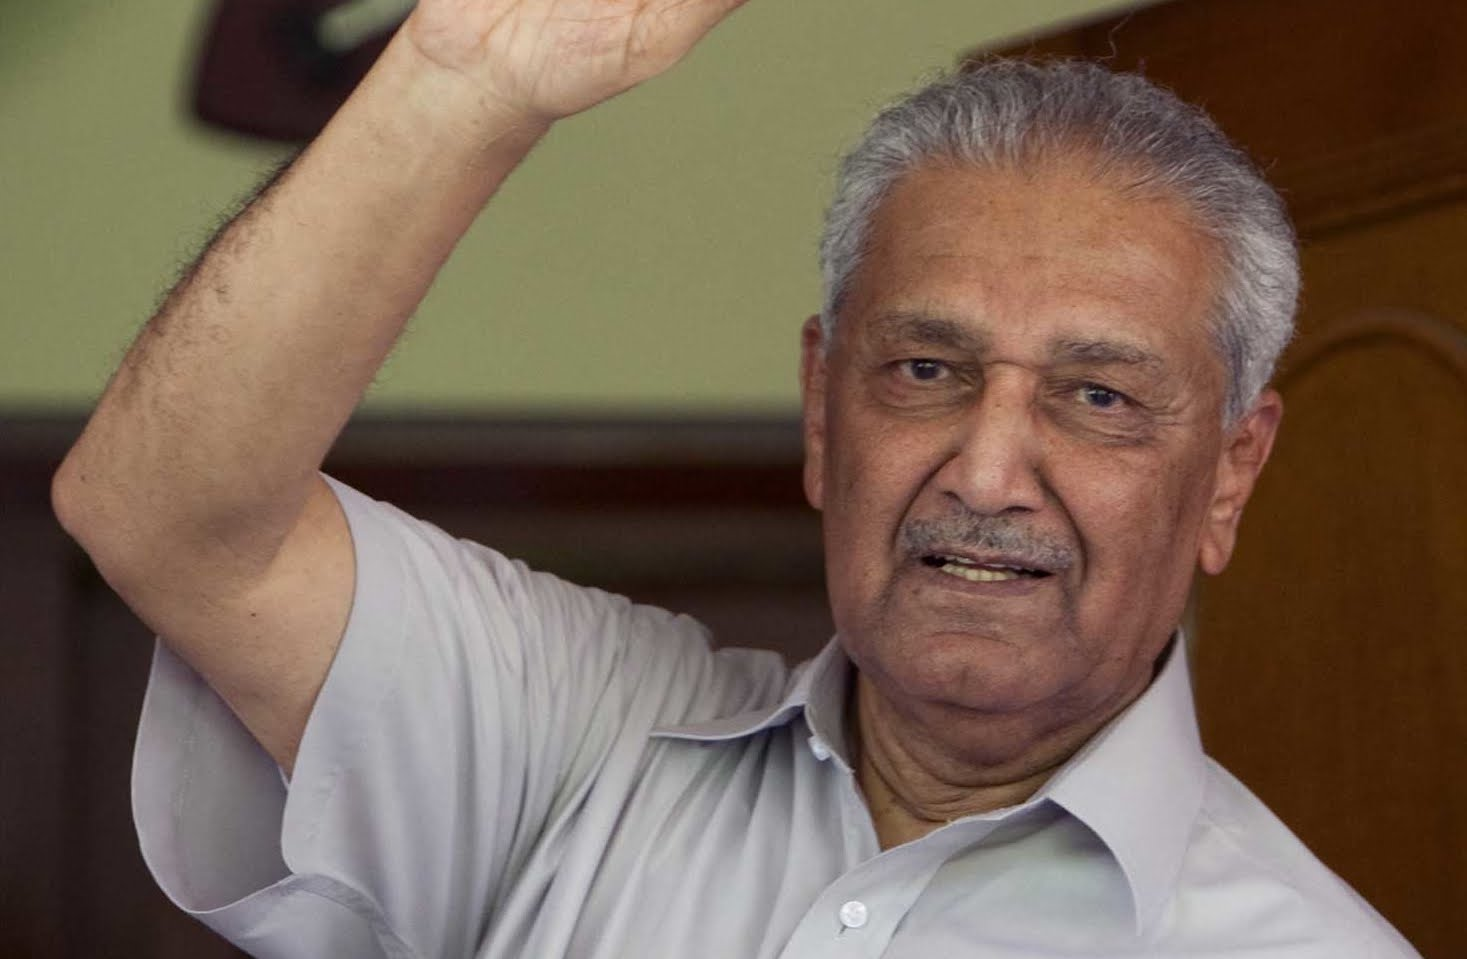 essay on doctor abdul qadeer khan Drqadeer did his great part, now nation need to get rid of thieves in upcoming elections.